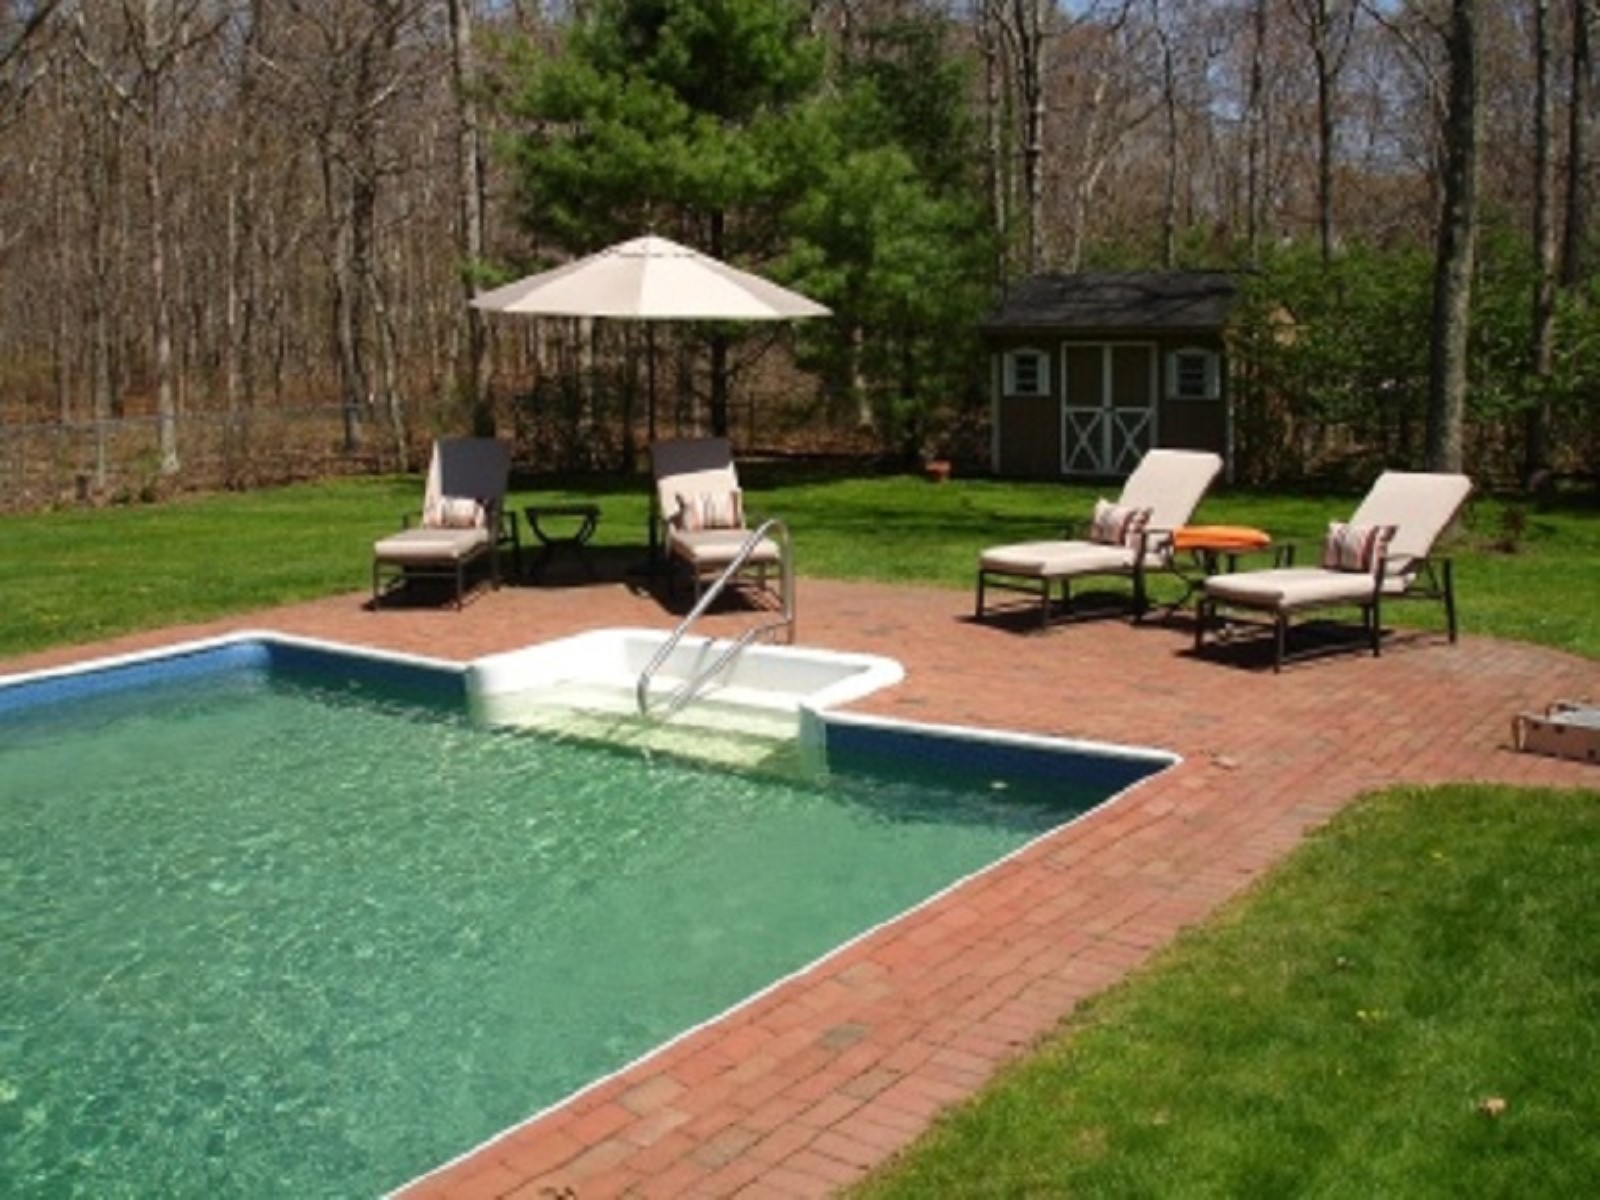 Single Family Home for Rent at Sagaponack with Pool and Privacy Sagaponack, New York 11962 United States